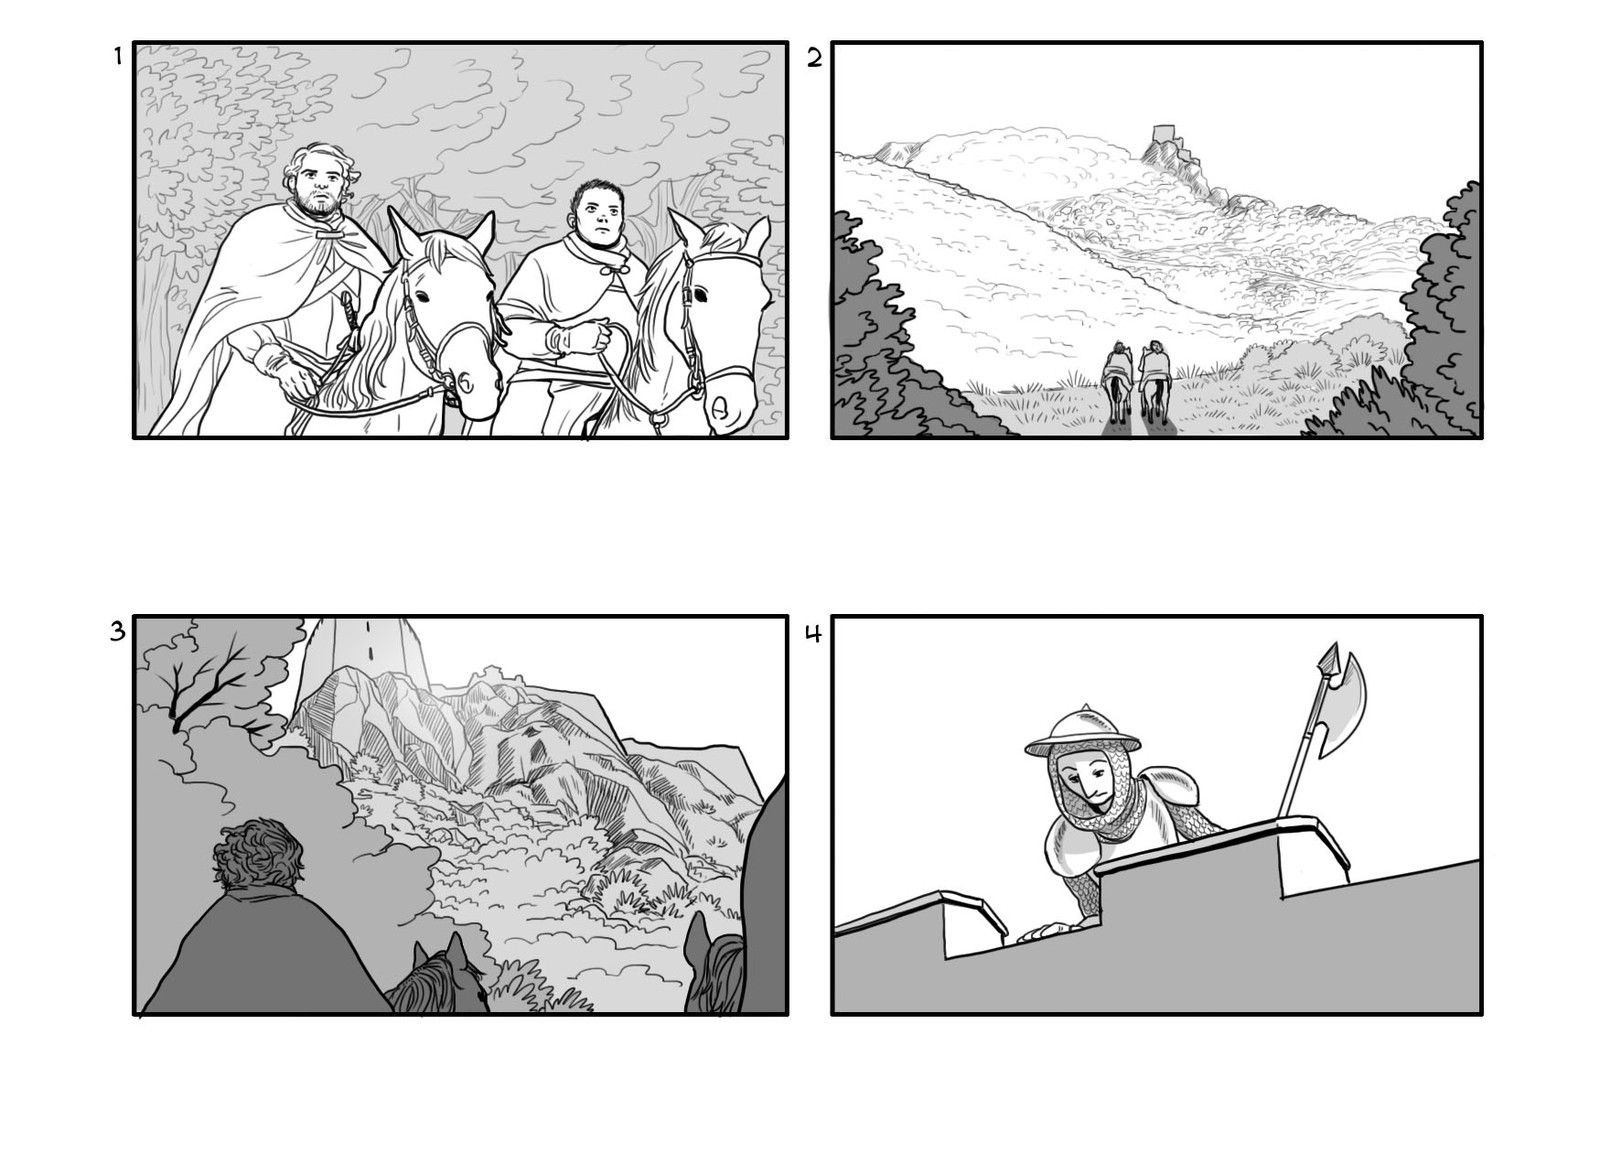 Storyboard made for a web video for the Occitanie region/county in France - Page 1 - (In French)